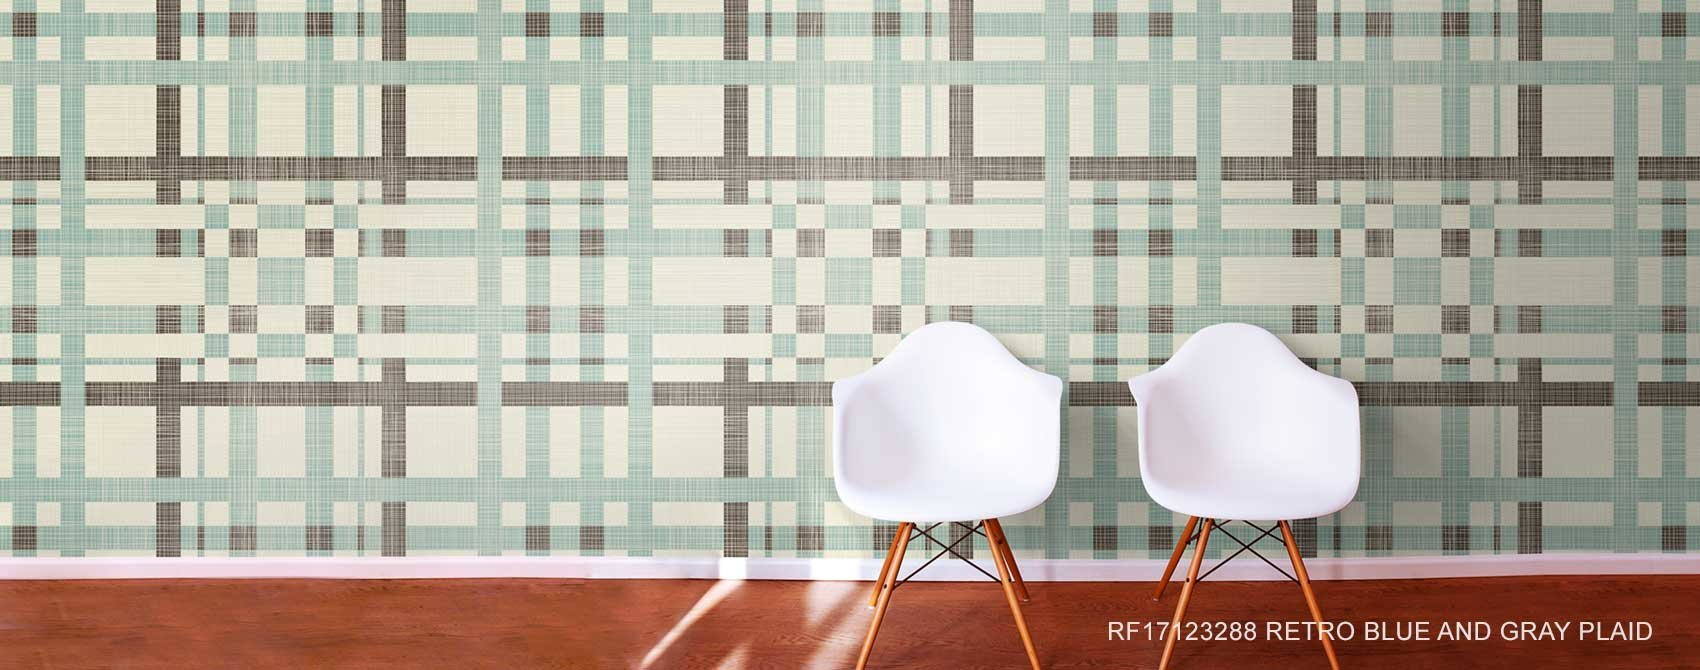 Retro Blue And Gray Plaid Wallpaper